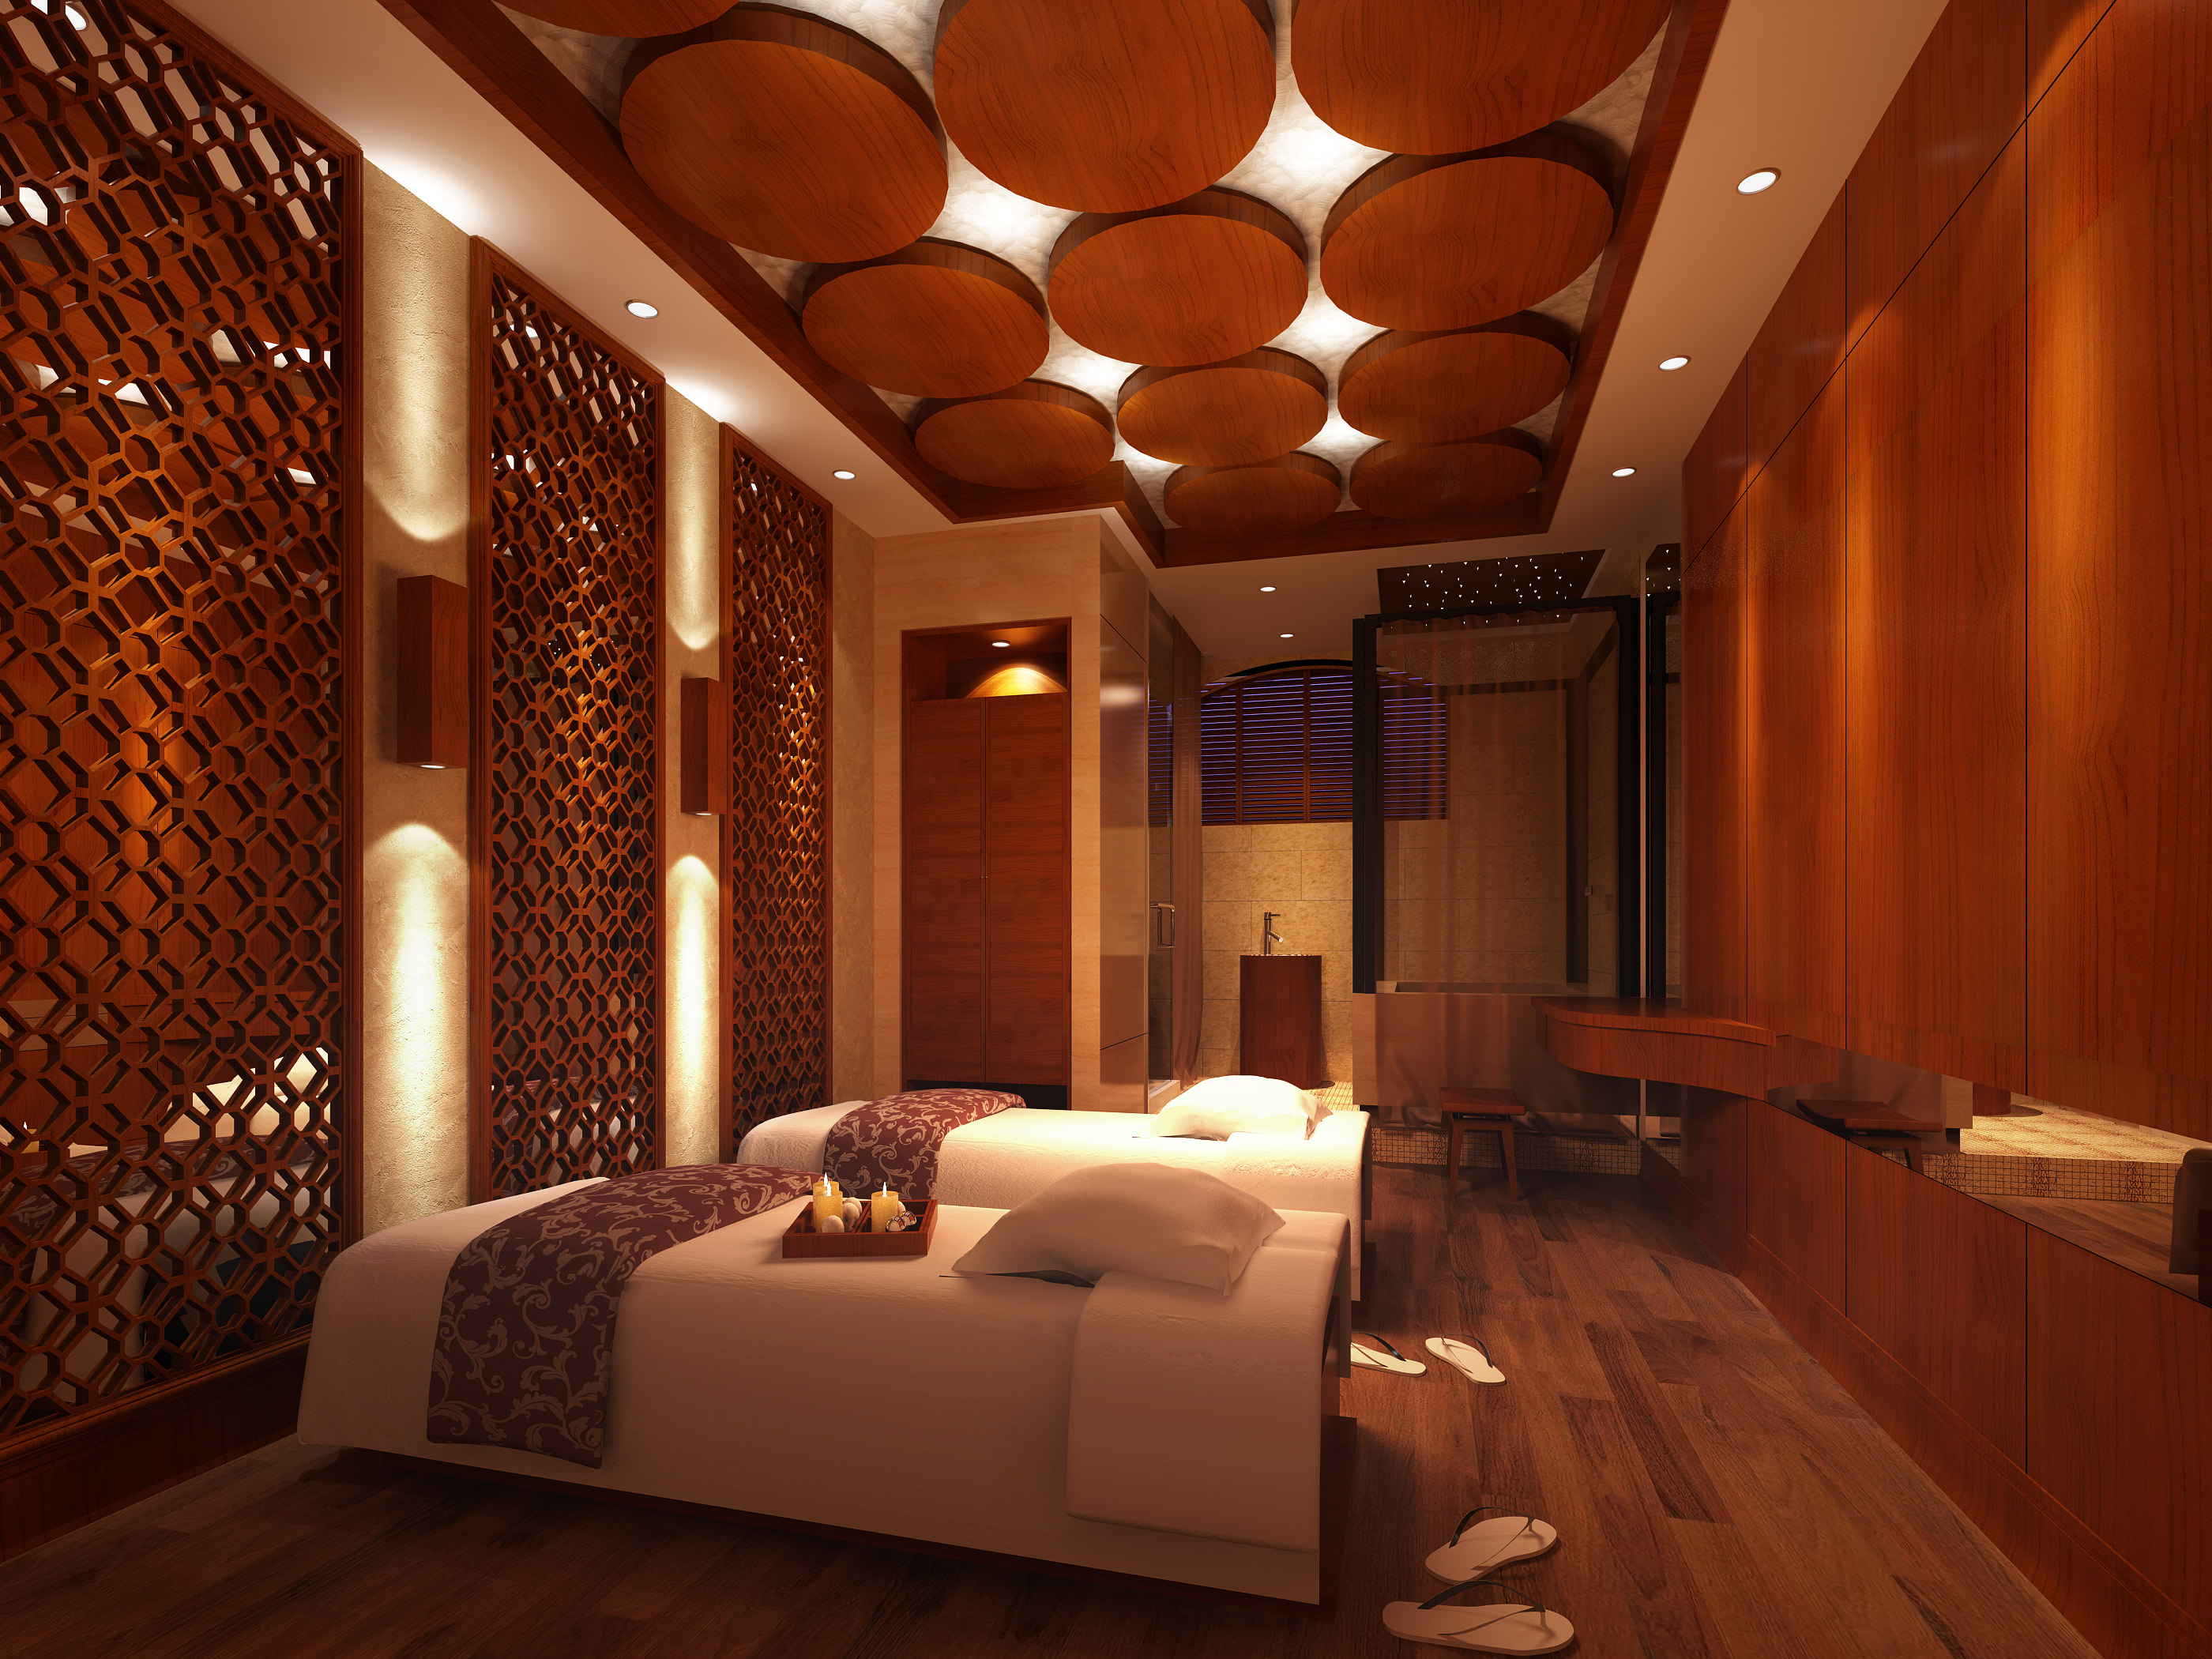 3D SPA Room with Wooden Decor Partitions | CGTrader